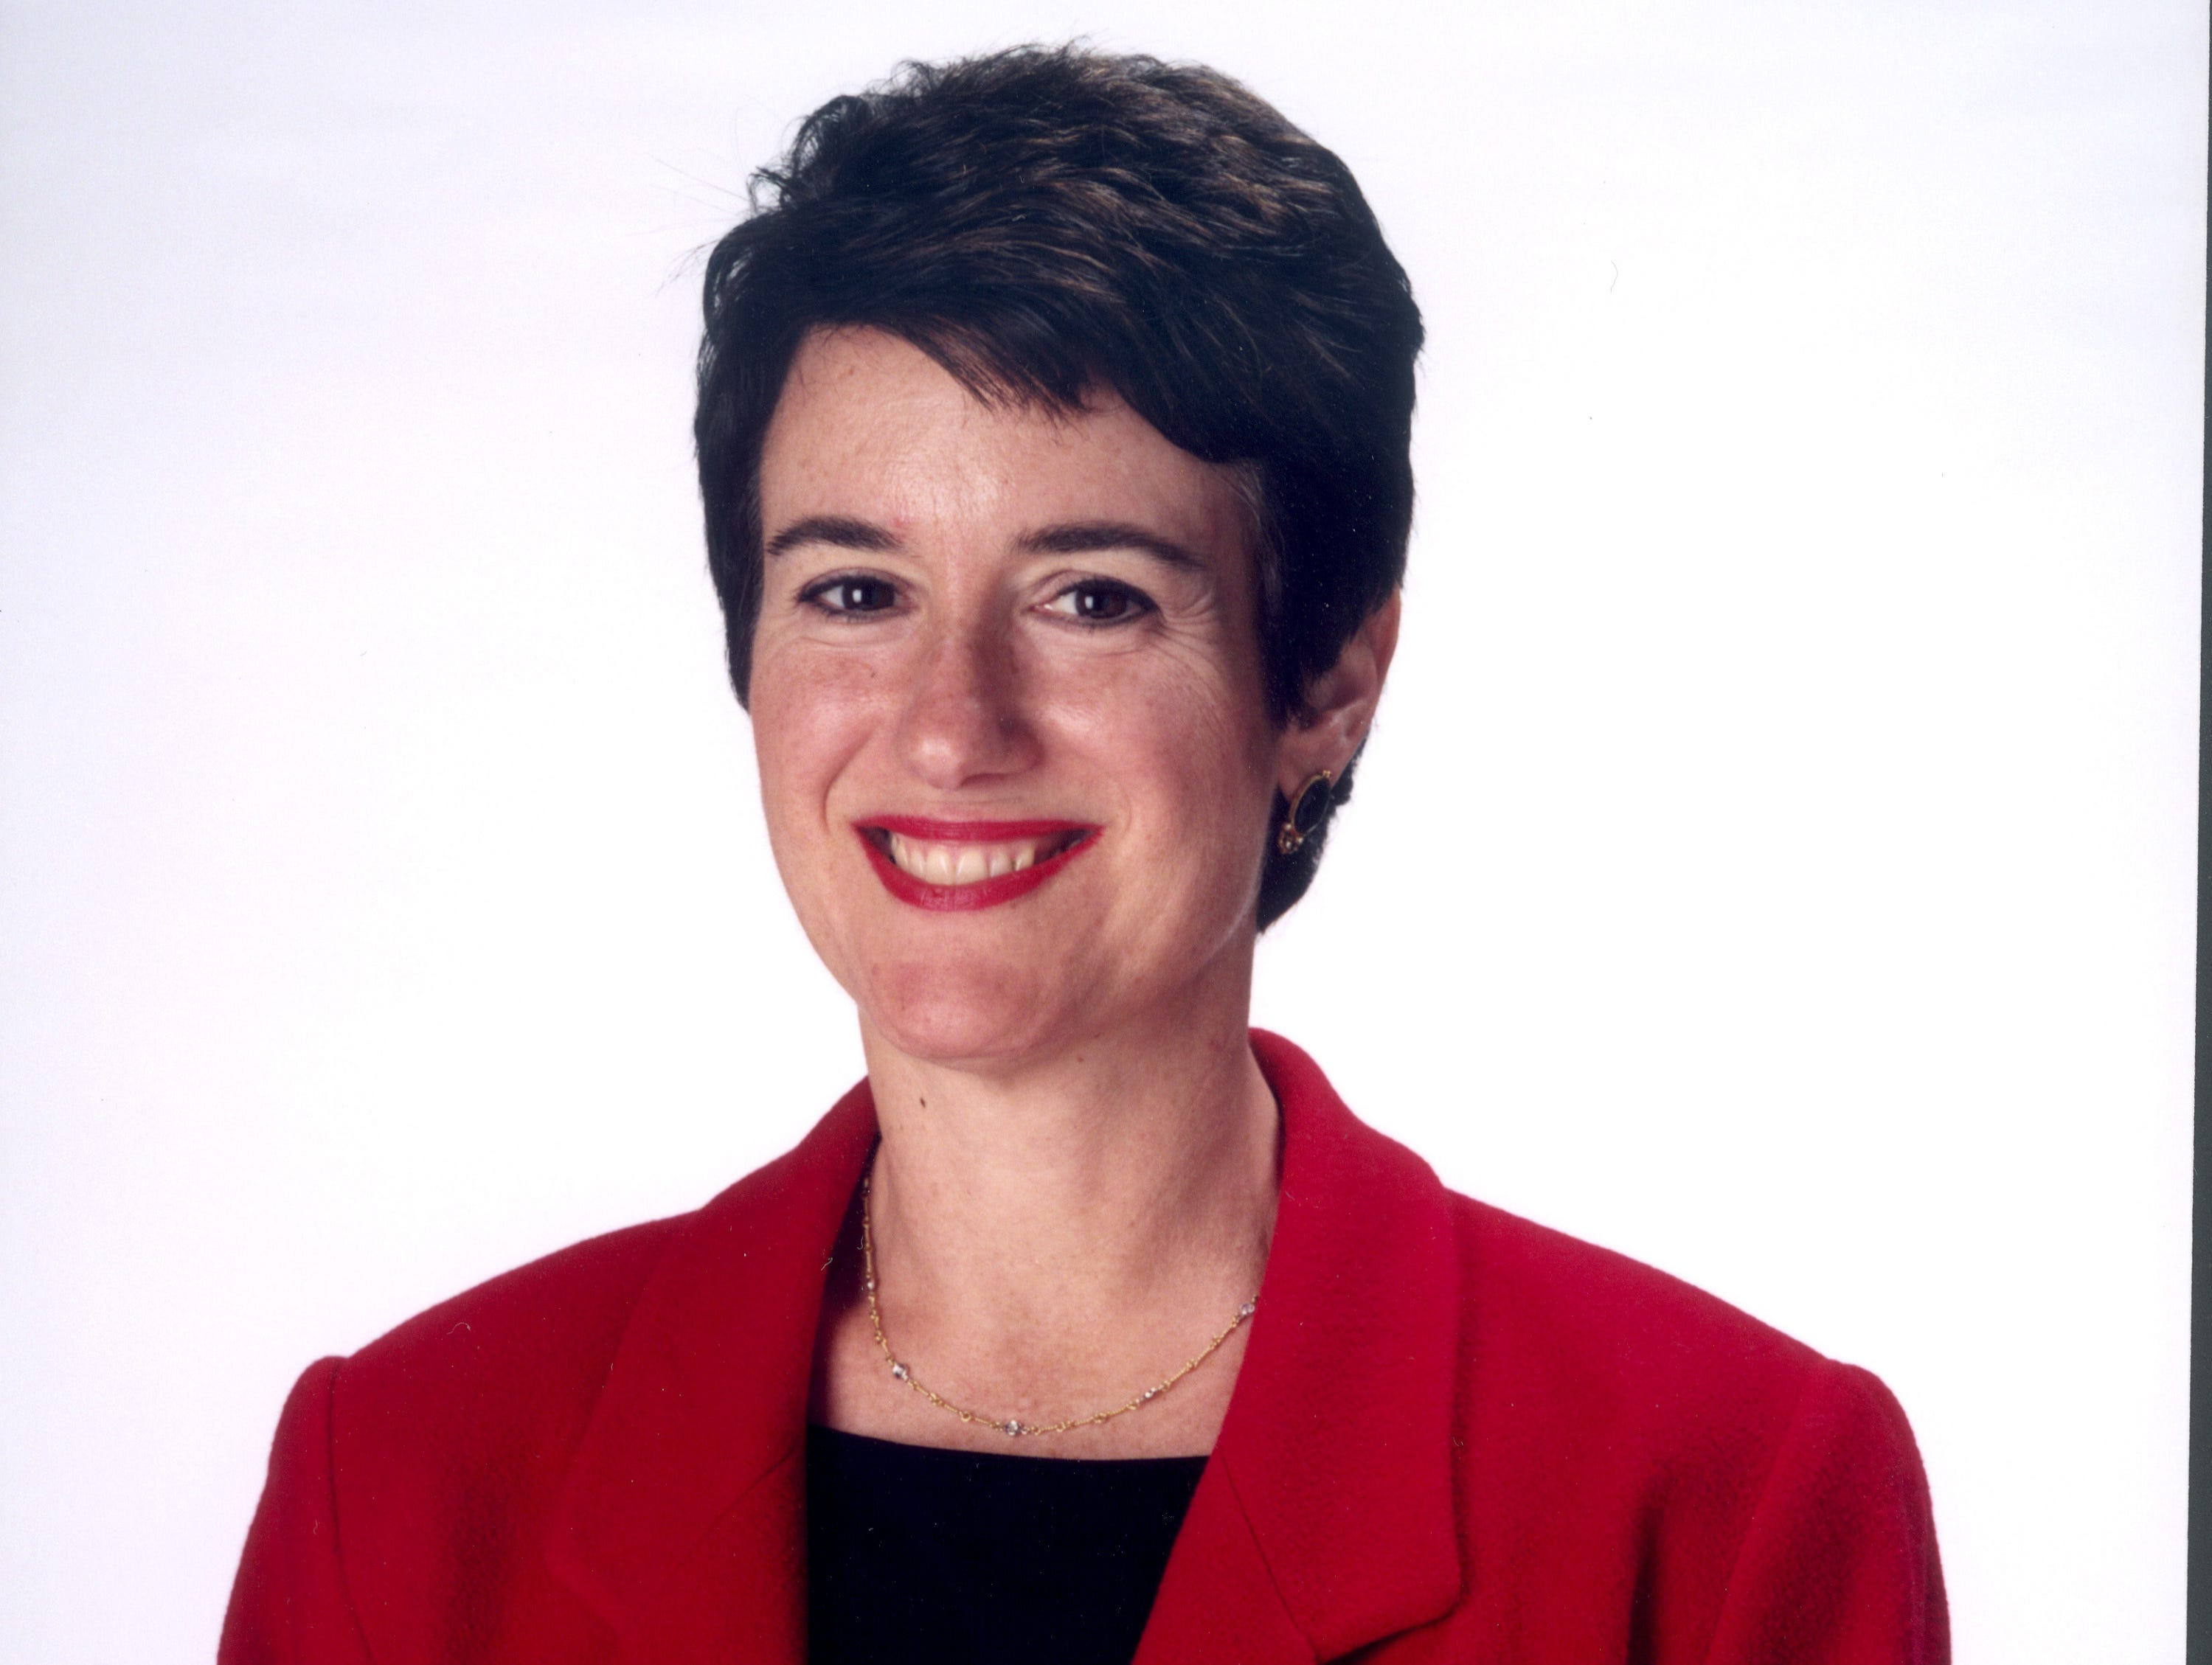 Susan Packard in 2001